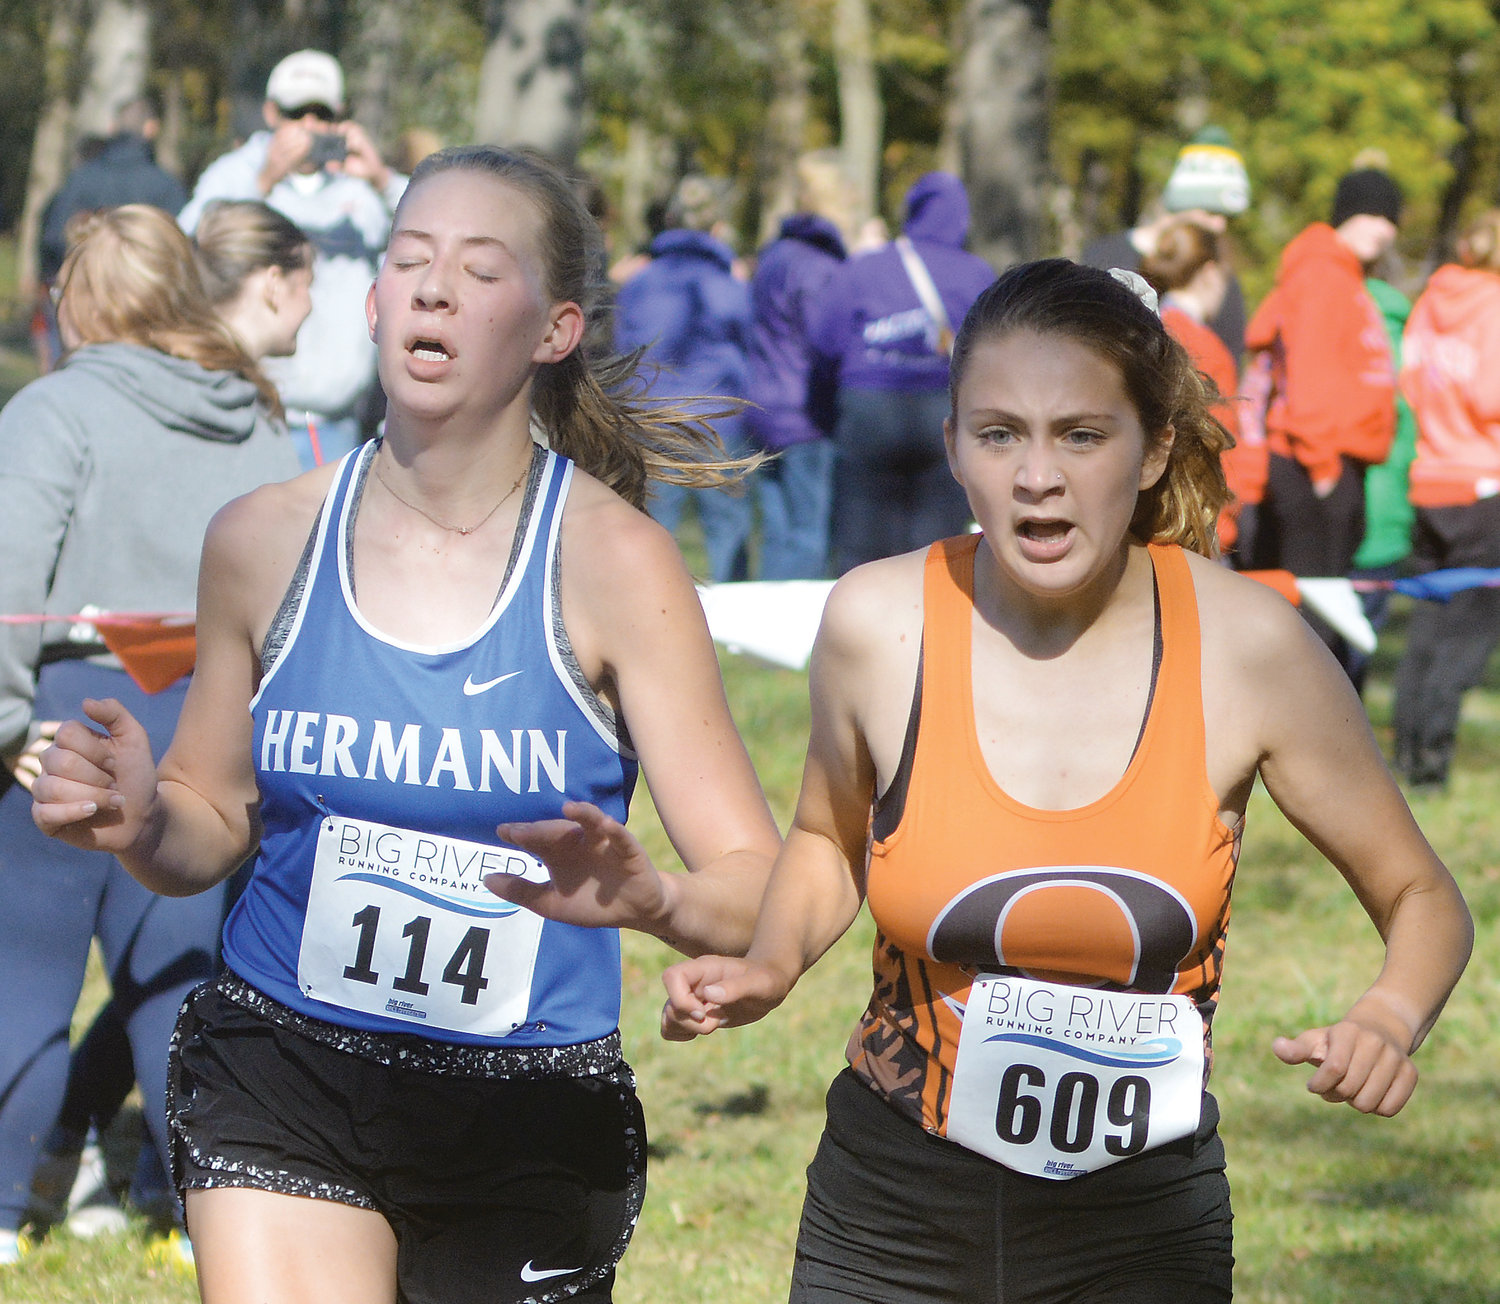 Kyra Binkhoelter (right) edges Hermann's Ava Engemann at the finish line in the varsity girl's race during last Tuesday's Four Rivers Conference (FRC) cross country meet hosted by St. James High School at Maramec Spring Park south of St. James. Binkhoelter joined Dutchgirl seniors Sophia Ashner, Kendra Hults, Macy McKinney and Molli Gross as four-time FRC team champions in cross country.